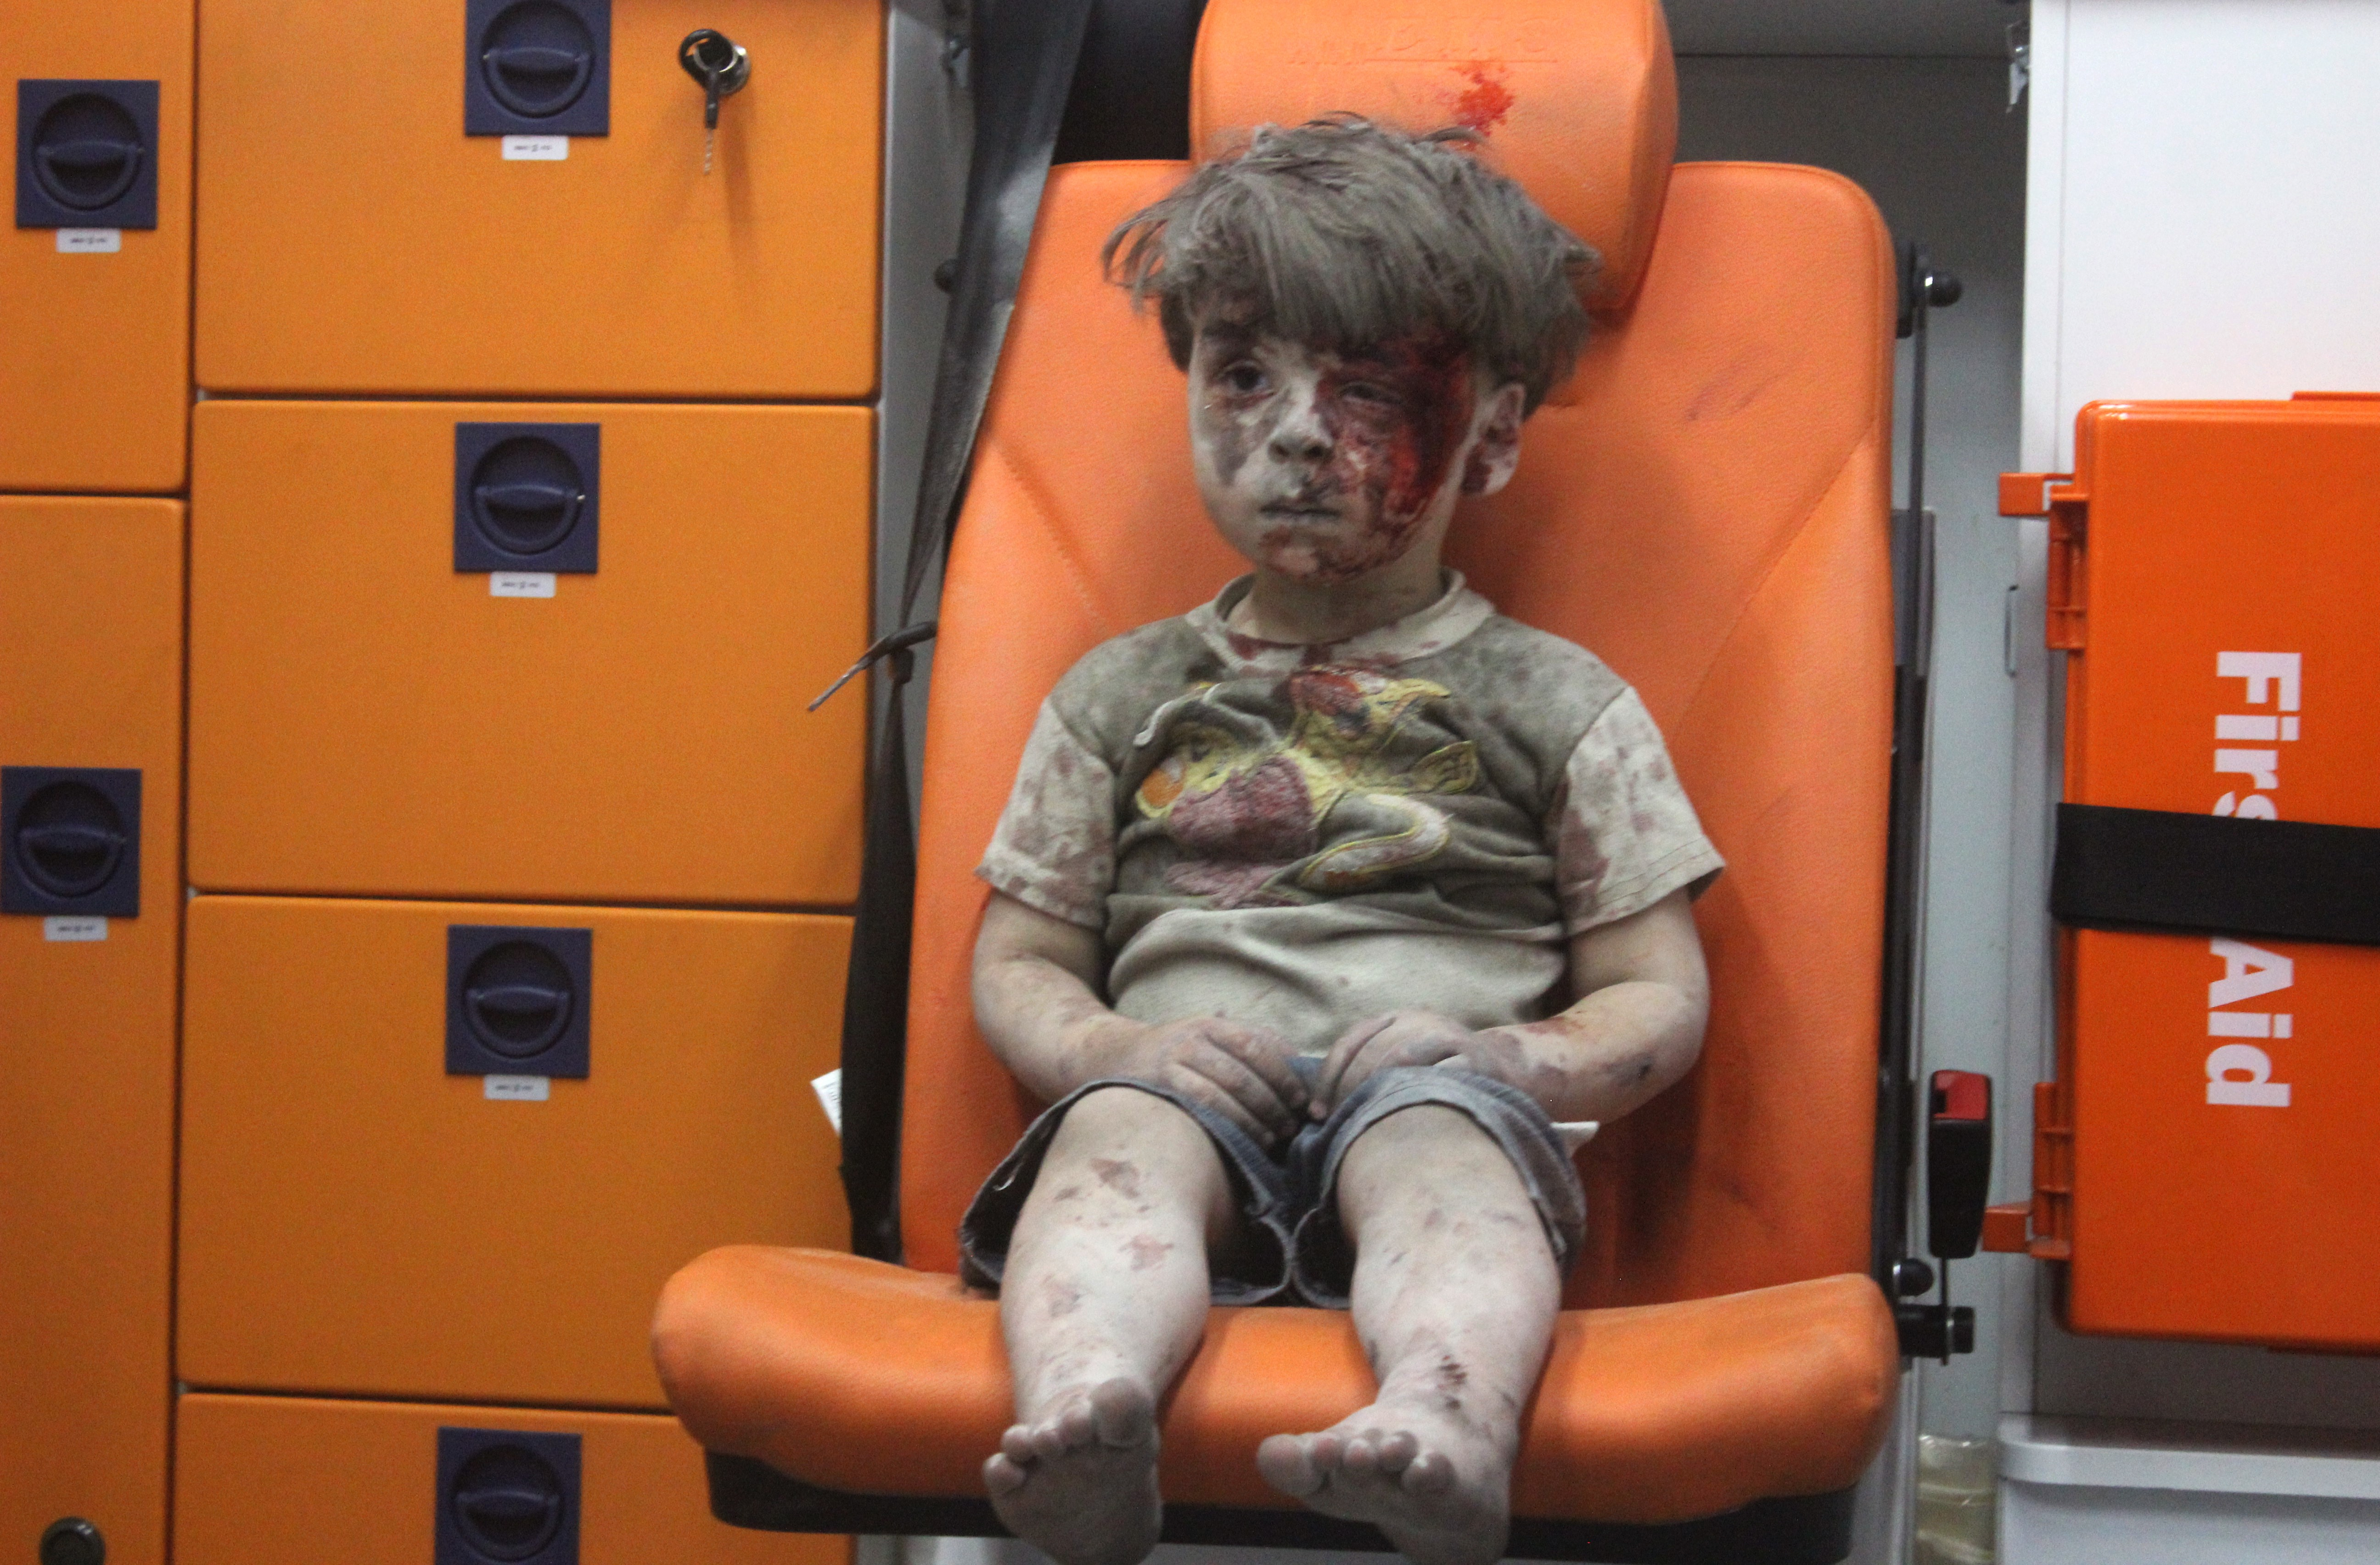 Five-year-old Syrian boy Omran Daqneesh sits in the back of the ambulance after he was injured during an airstrike in Aleppo, Syria, on Aug. 17, 2016.